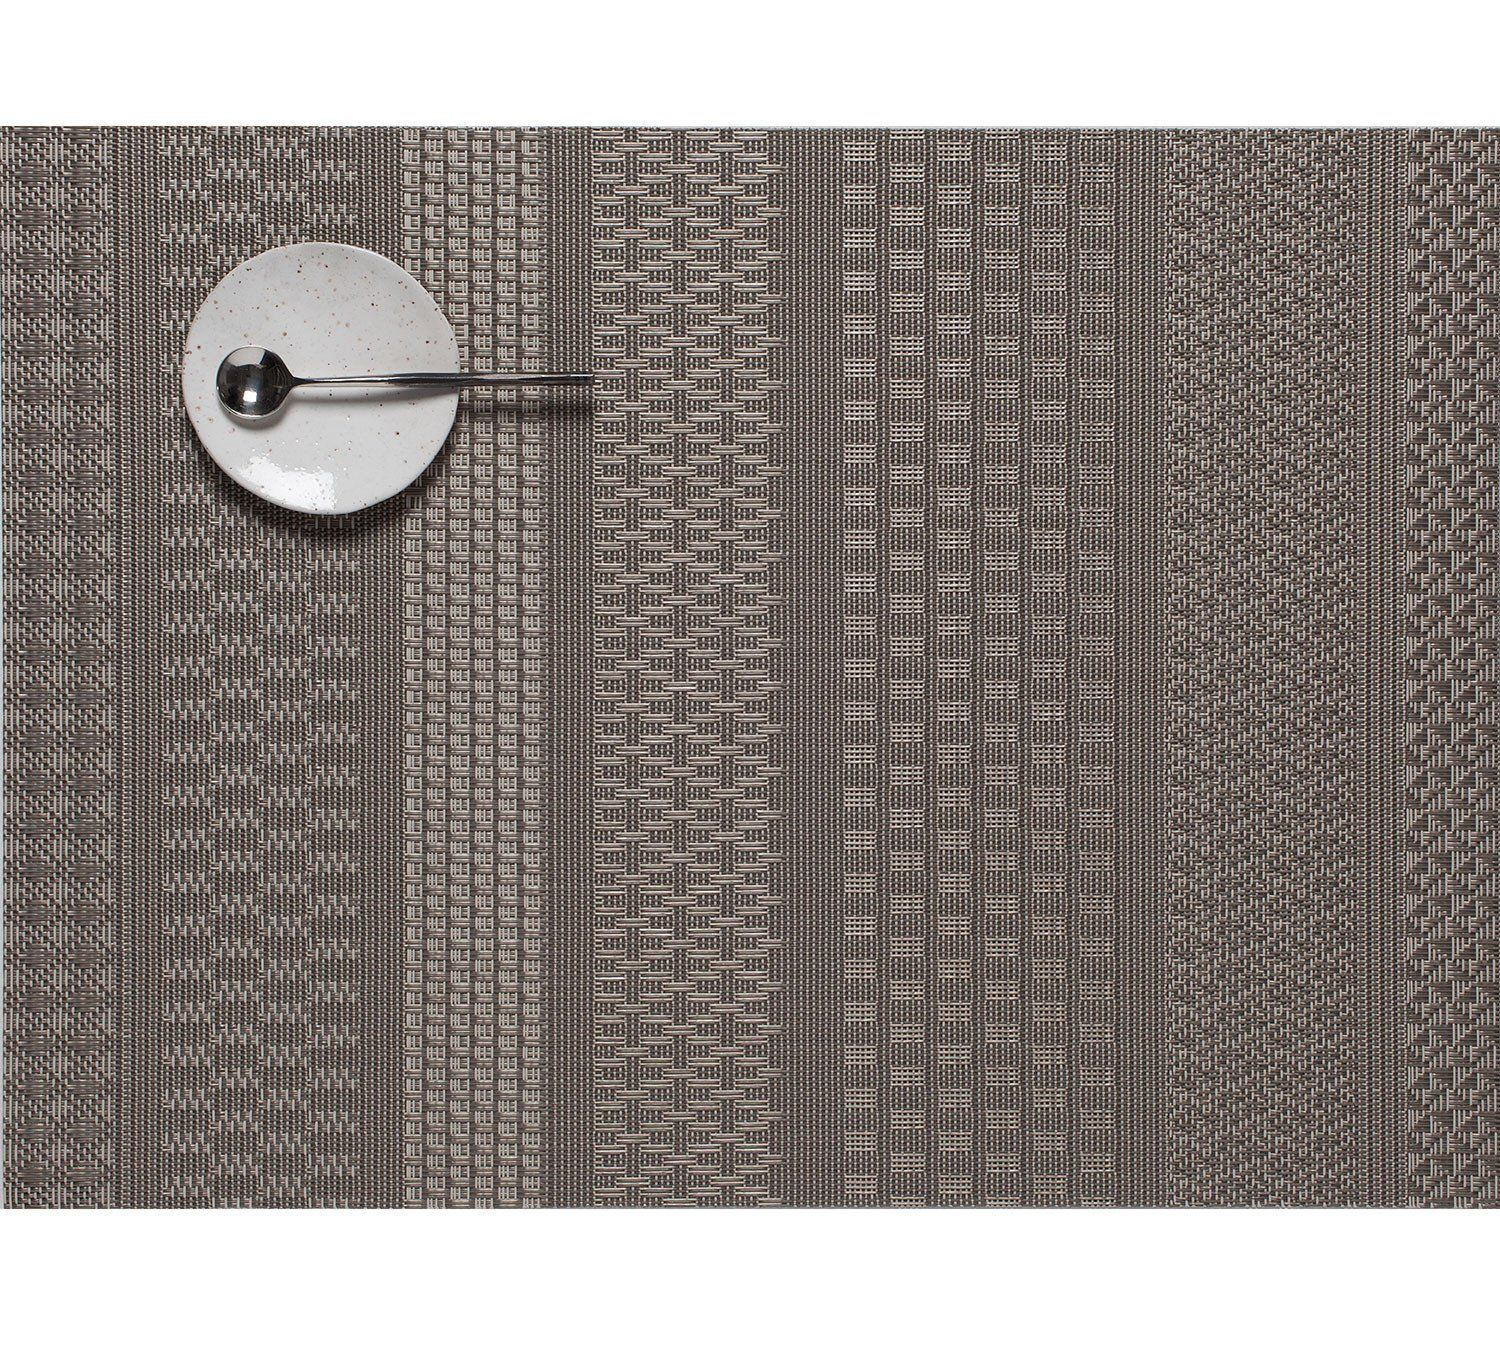 Mixed Weave Luxe Rectangle Placemat In Topaz Design By Chilewich Placemats Chilewich Weaving